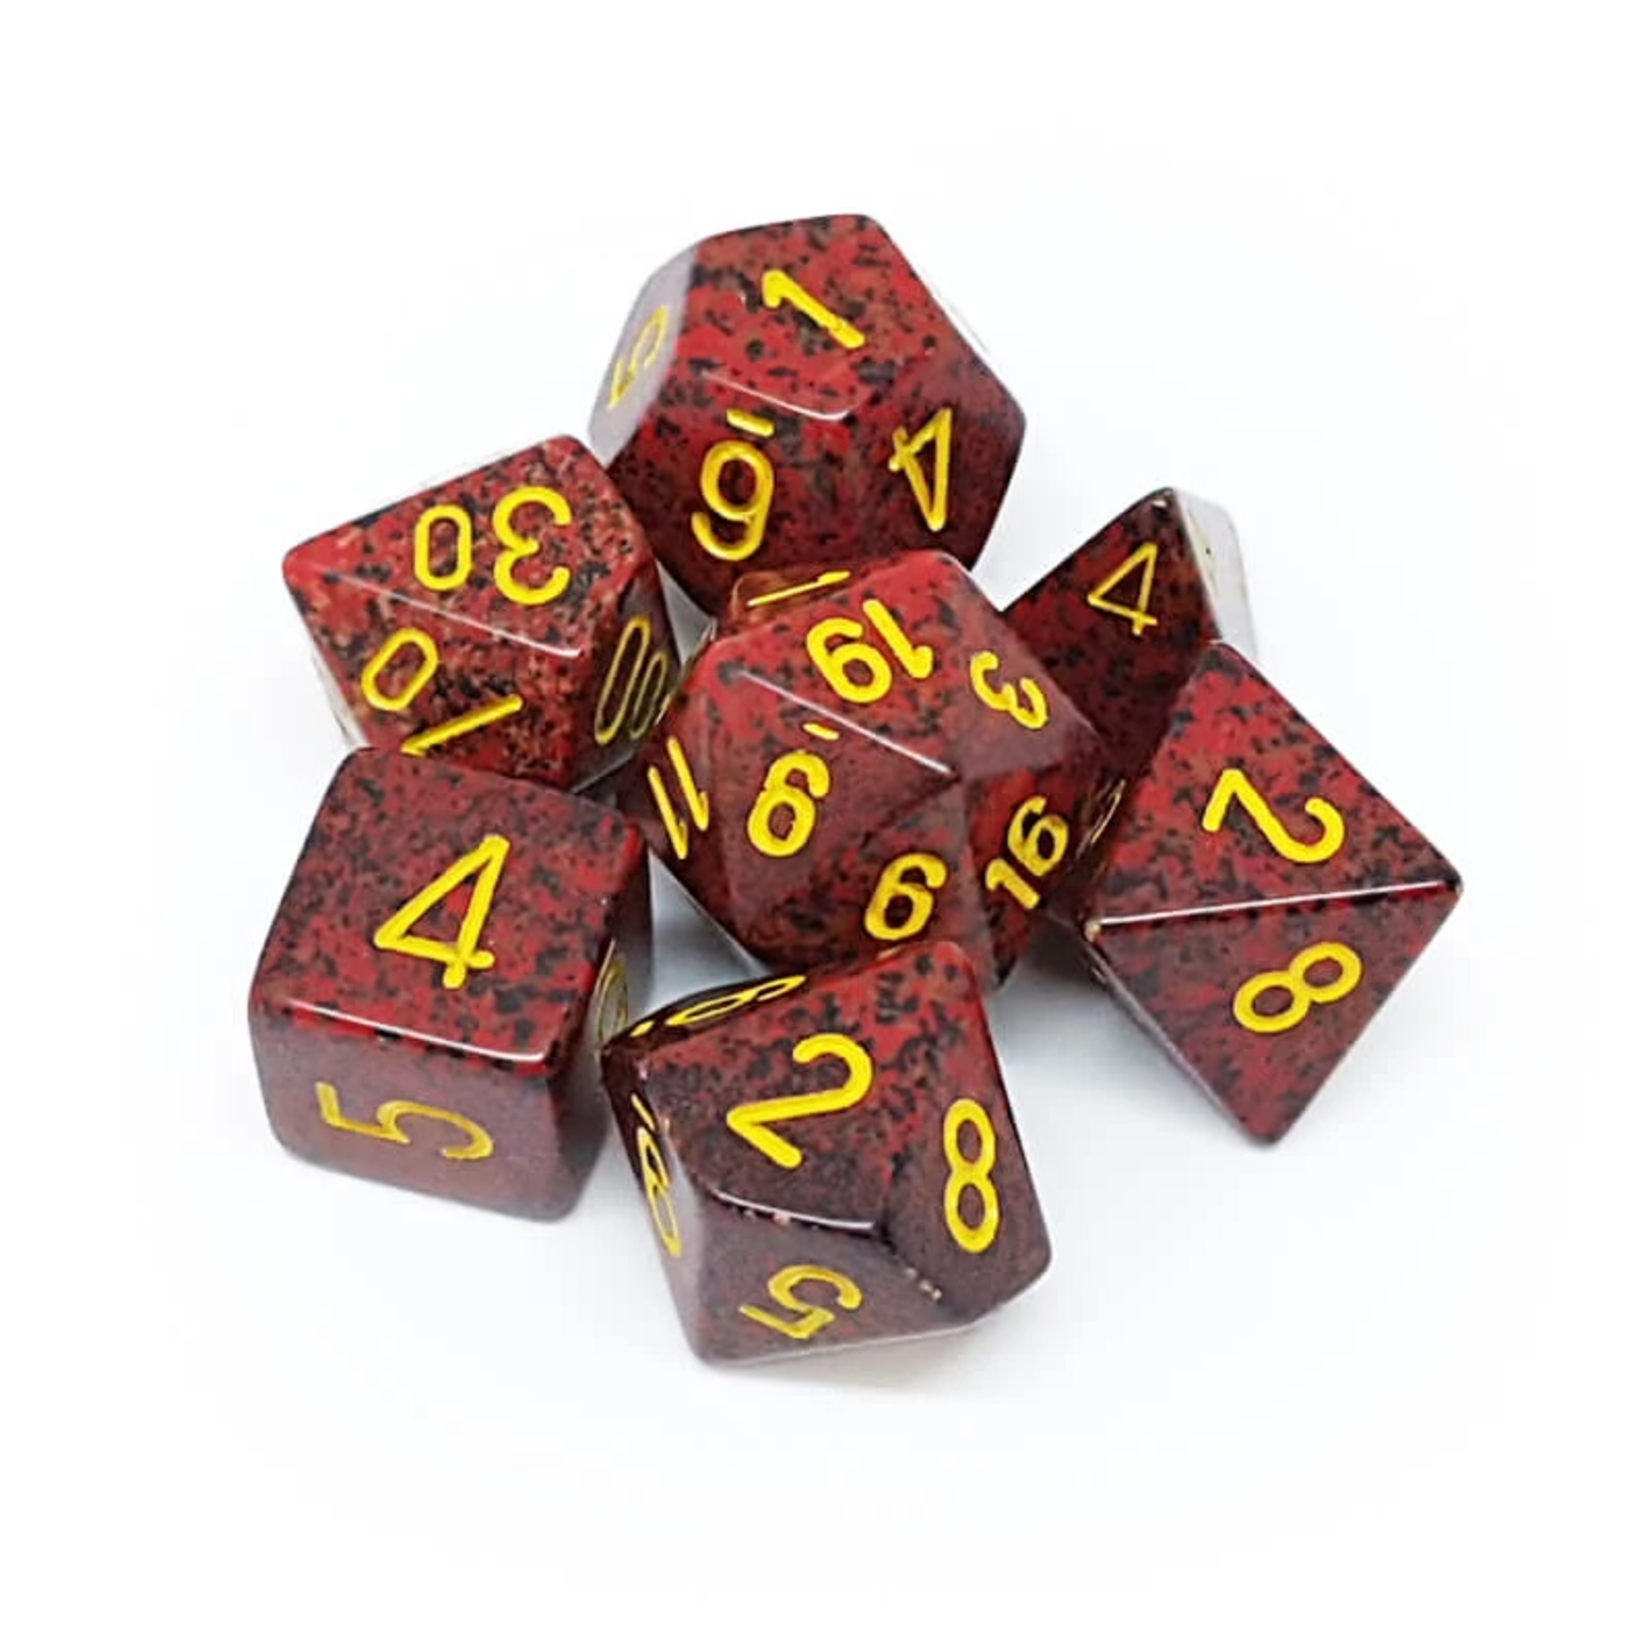 Chessex 25323 Speckled Polyhedral Set Mercury